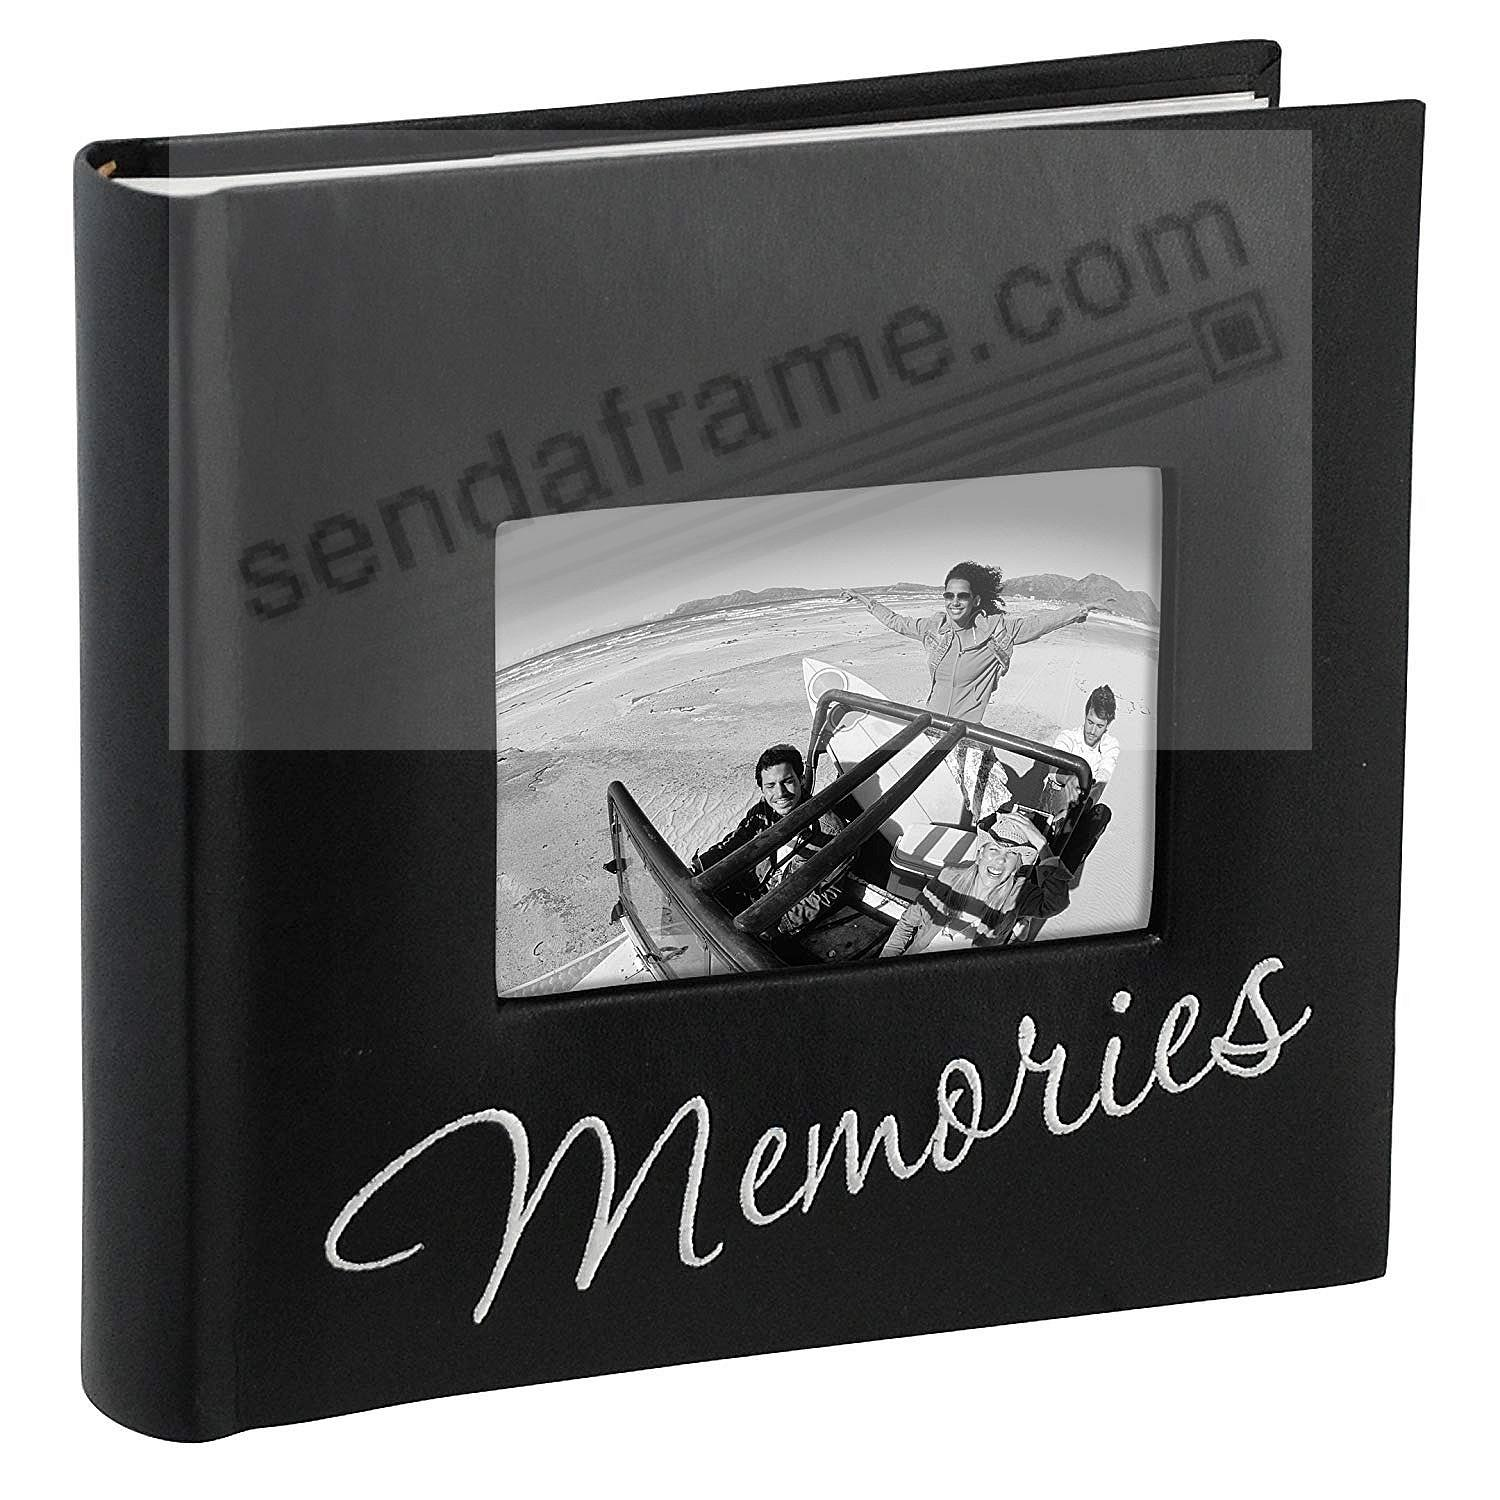 Embroidered MEMORIES album by Malden® holds 160 photos